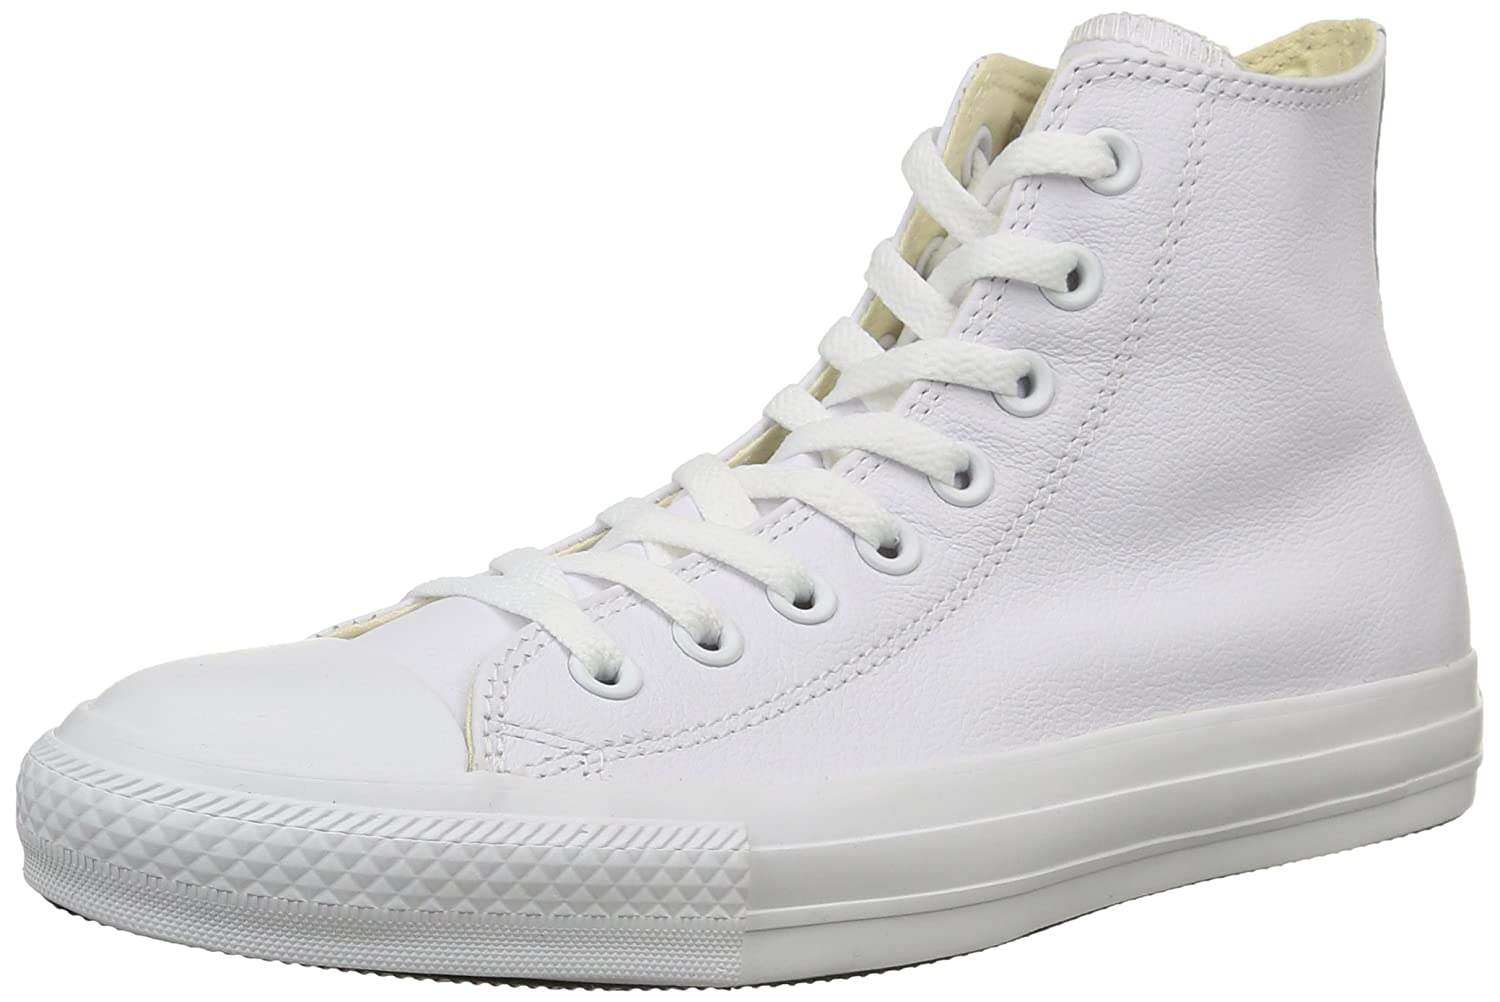 Converse Chuck Taylor All Star Hi Zapatillas Unisex adulto